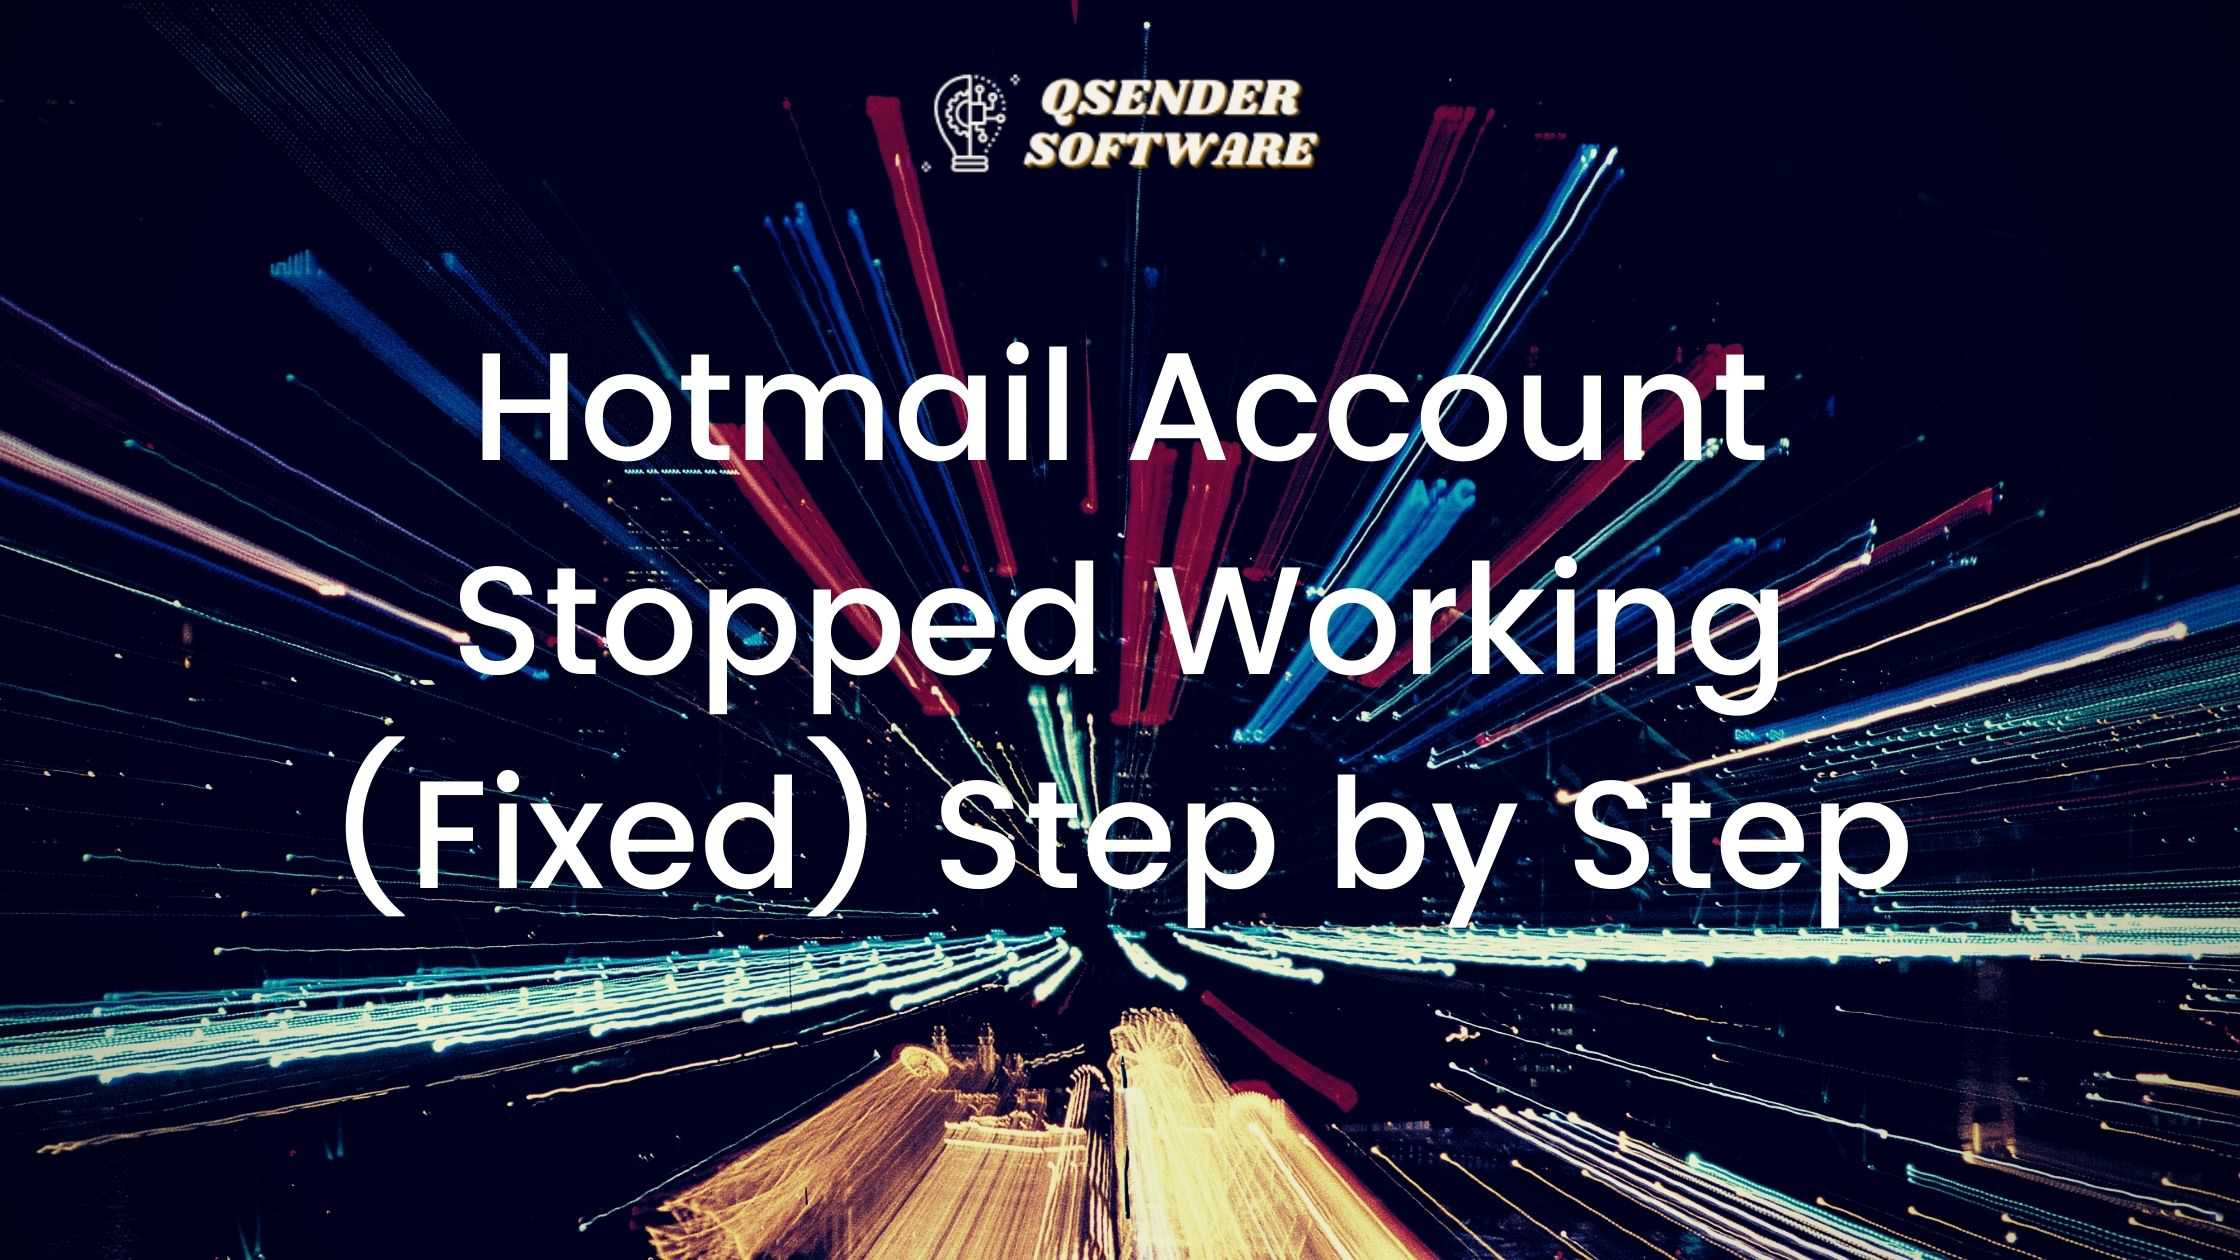 Hotmail Account Stopped Working (Fixed) Step by Step